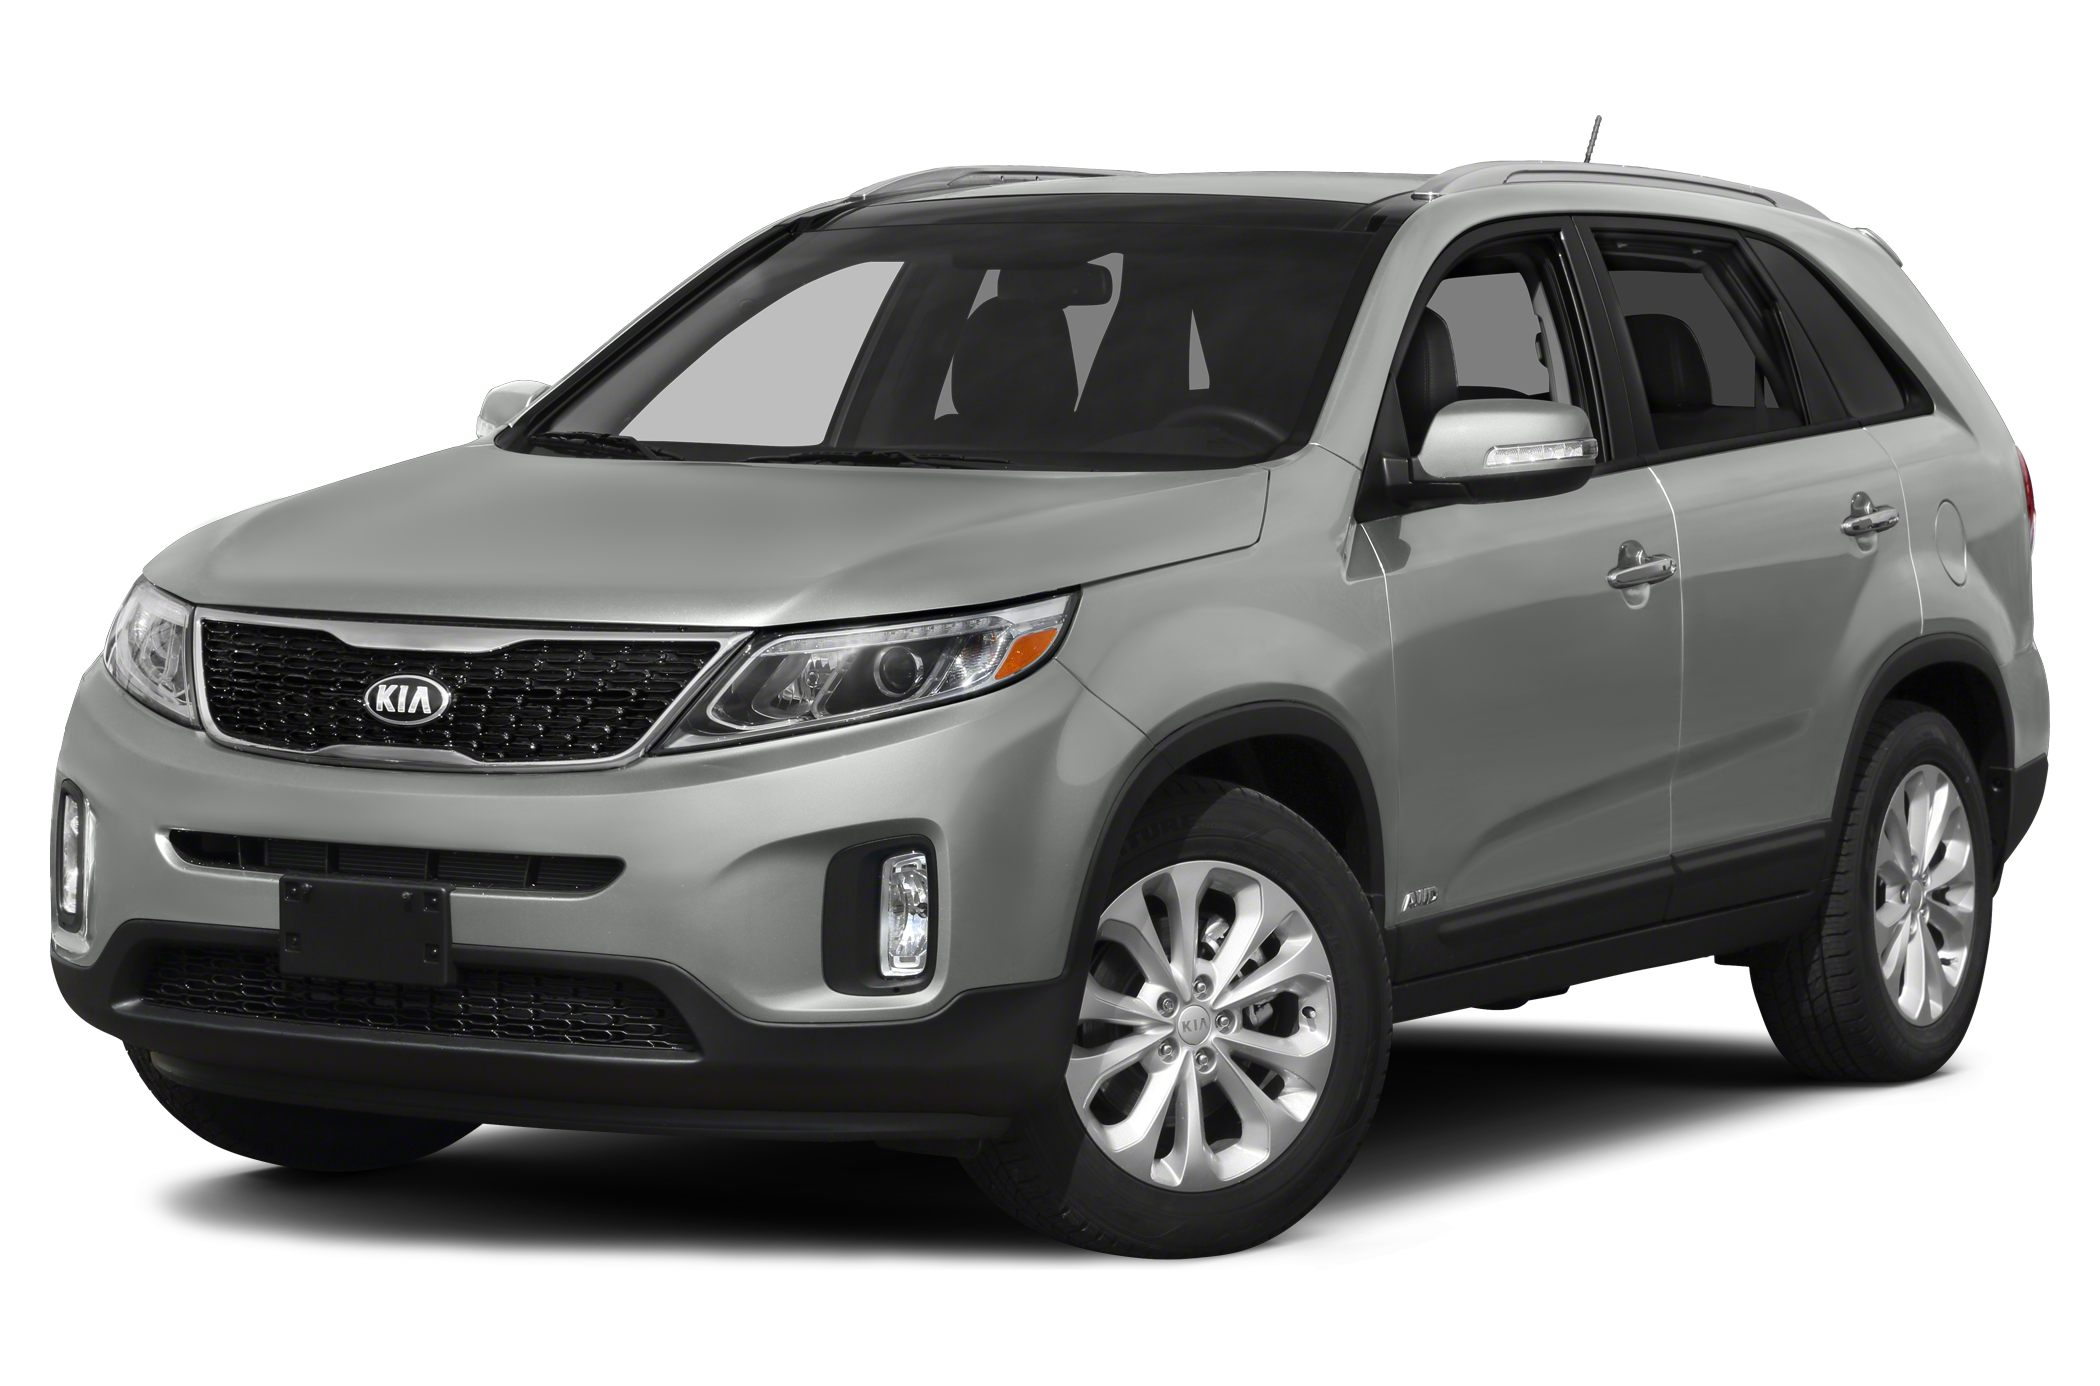 2015 Kia Sorento LX  COME SEE THE DIFFERENCE AT TAJ AUTO MALL WE SELL OUR VEHICLES AT WHO